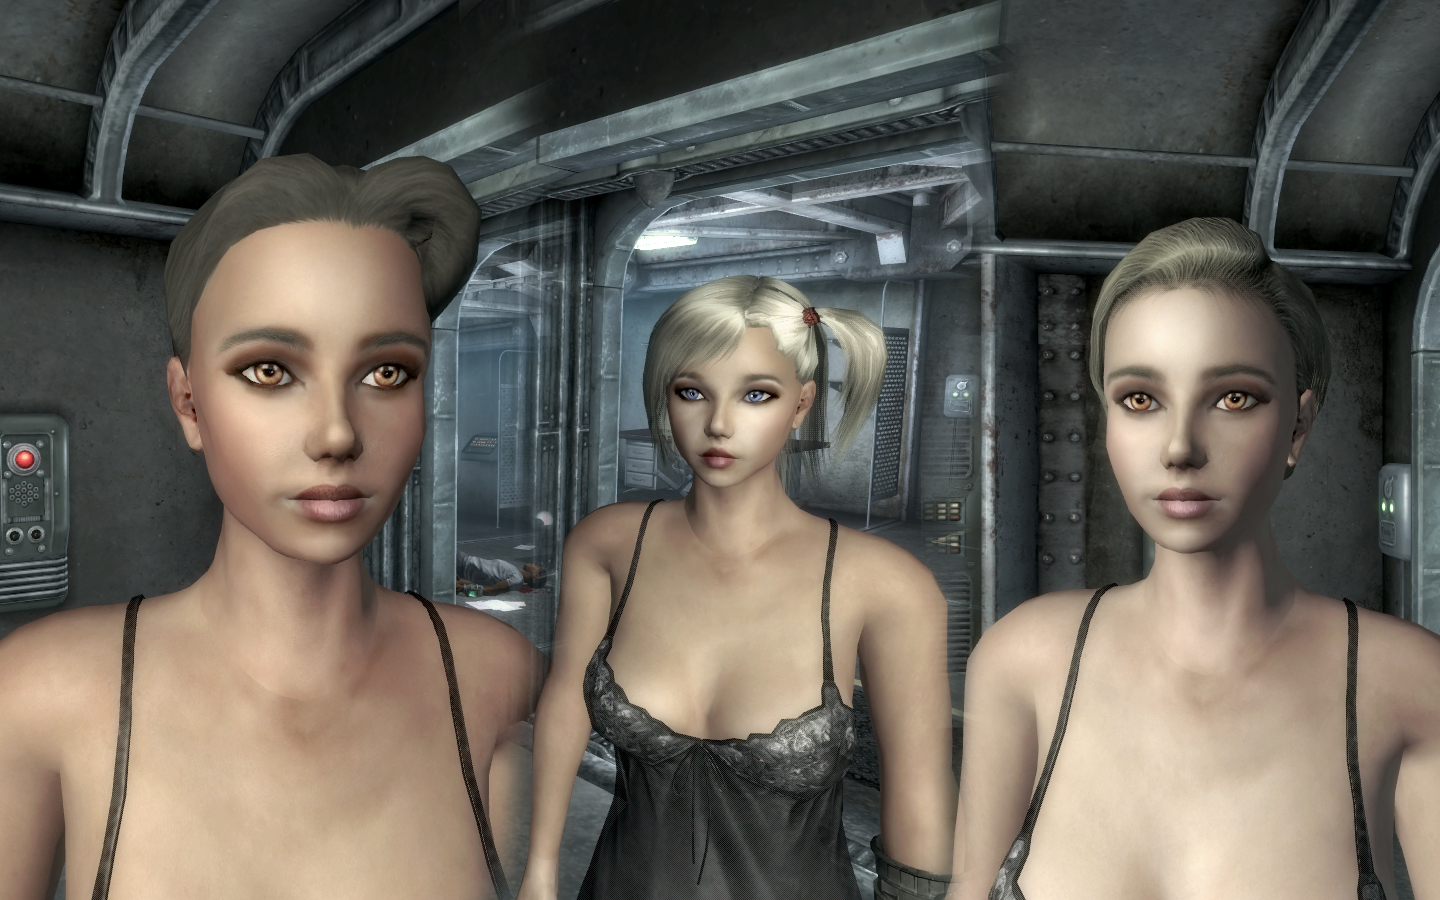 Fallout 3 mods nudity sex image